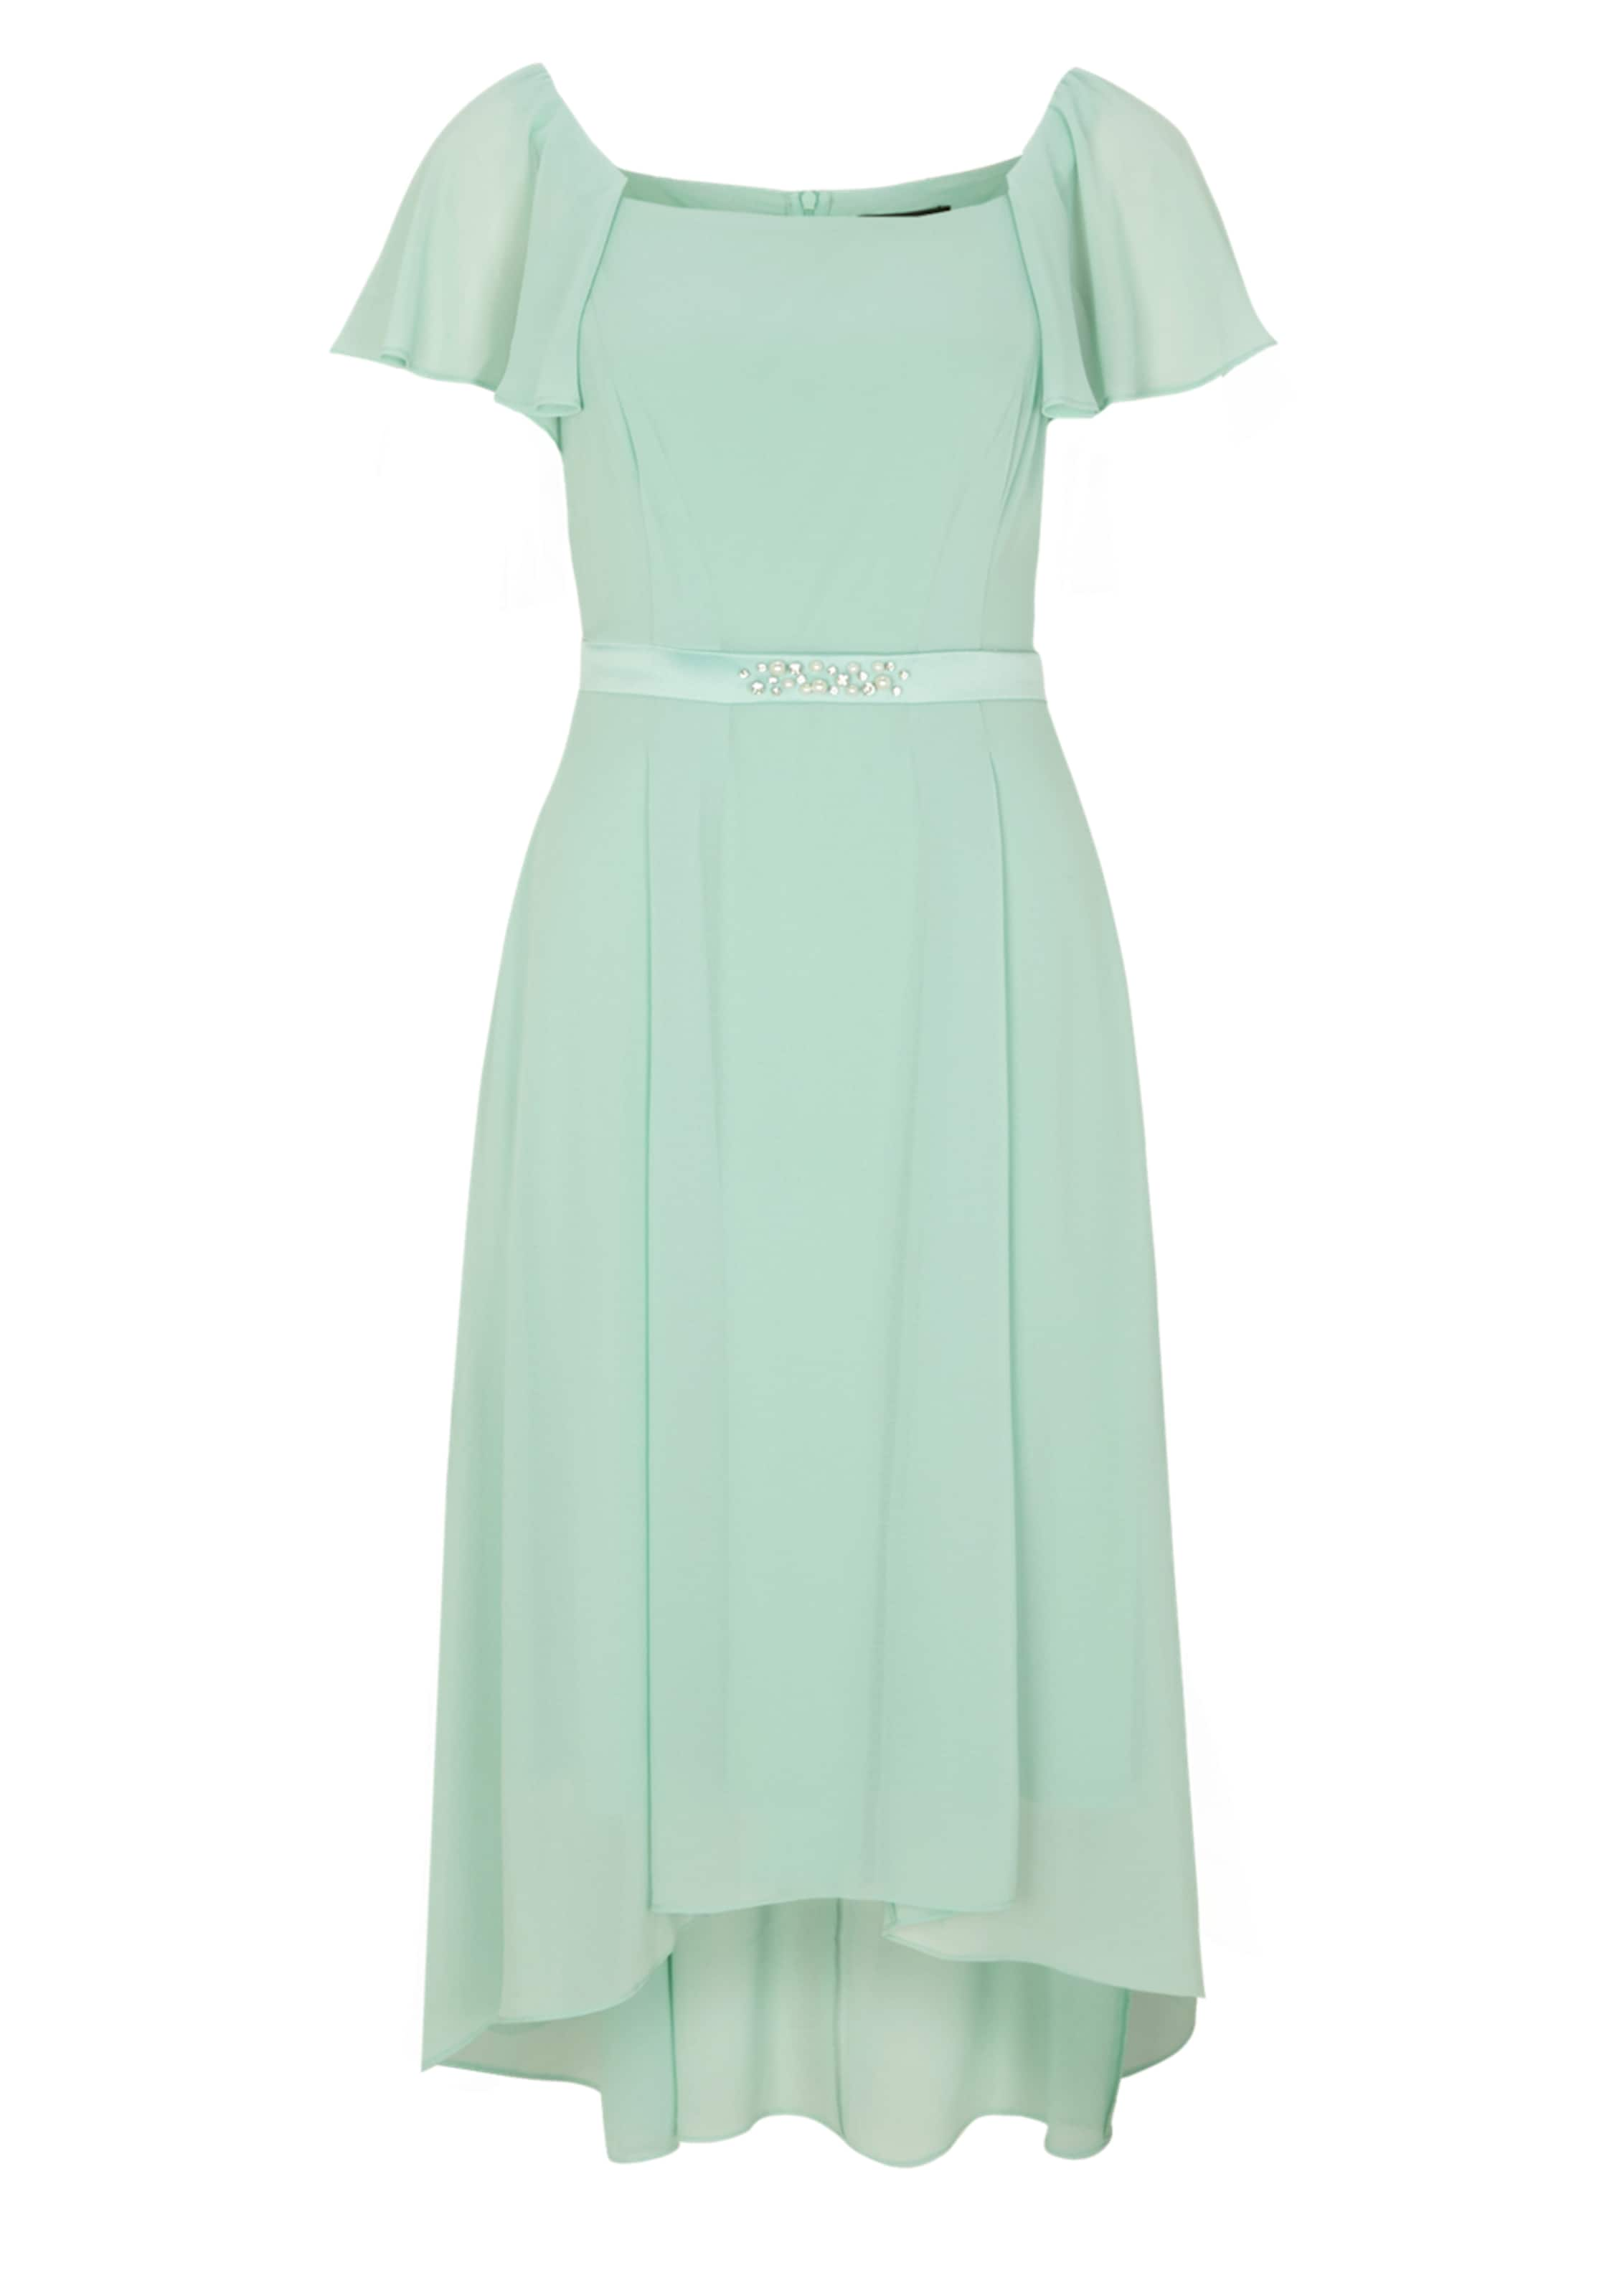 S oliver In Label Kleid Mint Black 7bfgyvY6